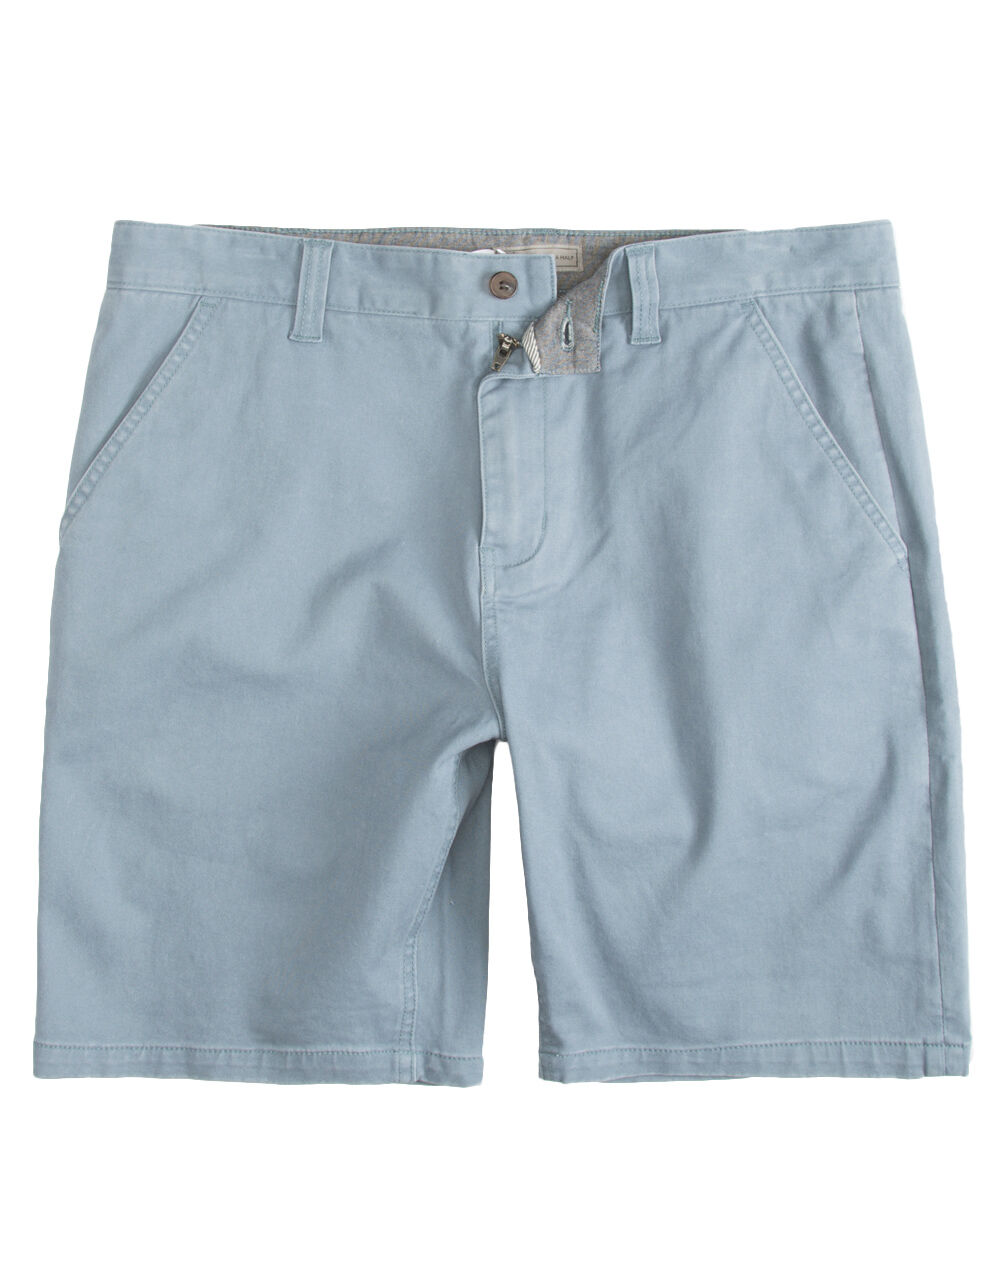 Image of CHARLES AND A HALF LINCOLN STRETCH CRYSTAL BLUE SHORTS